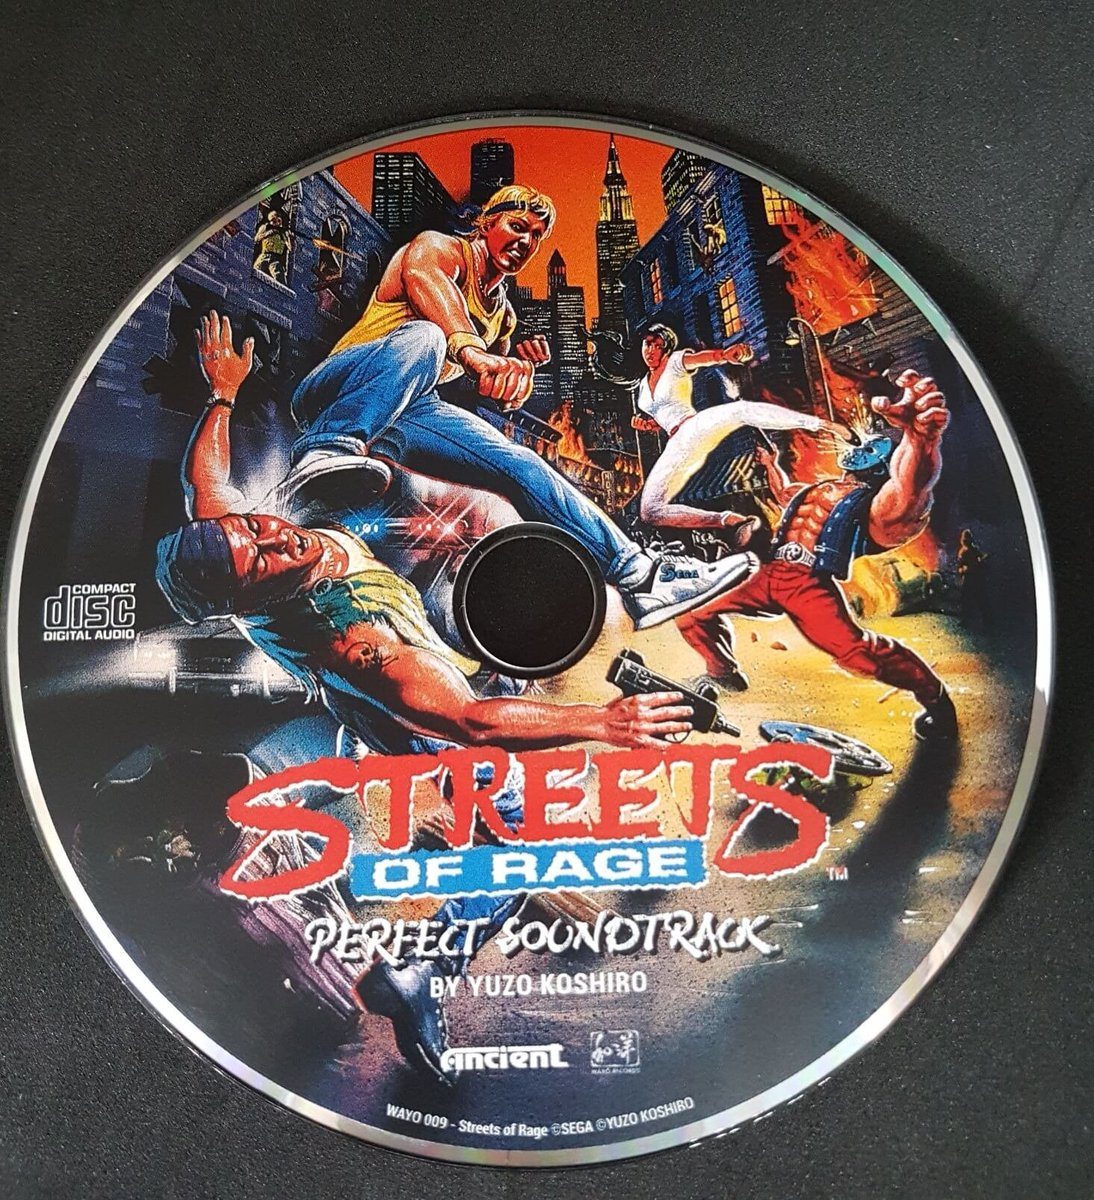 DATA DISC Streets of rage 3 ( vinyl ) DRJh434X0AAYIVS